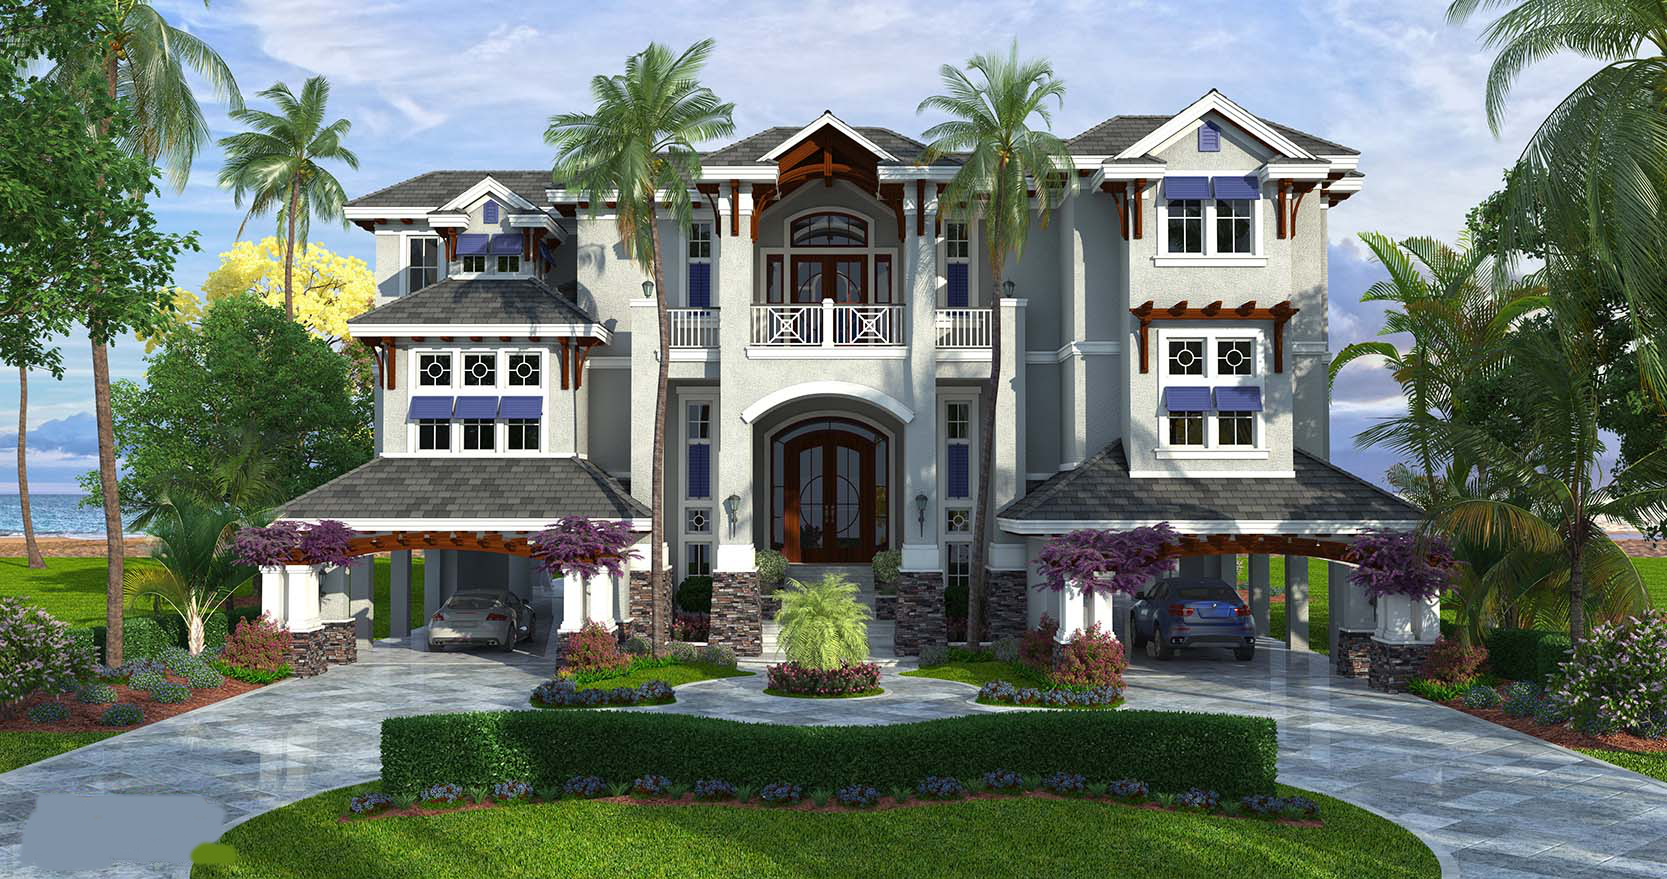 Luxury House Plan 175 1109 4 Bedrm 6189 Sq Ft Home